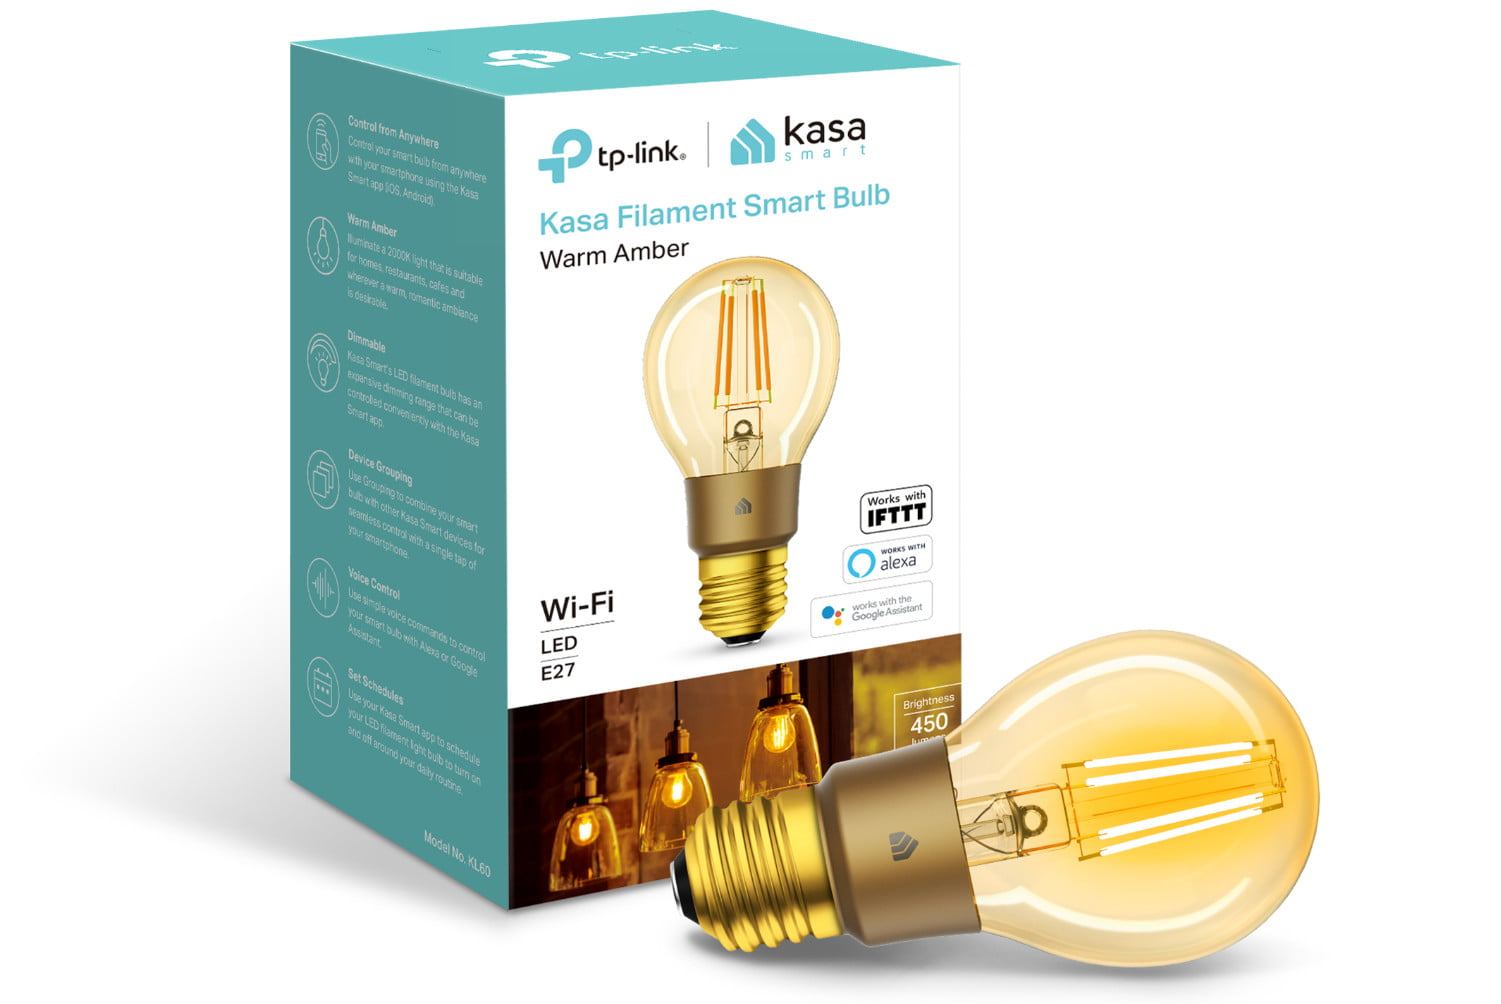 kasa smart lights are ready to party or give your home a vintage classic glow 19 kl60 packaging pr images  1